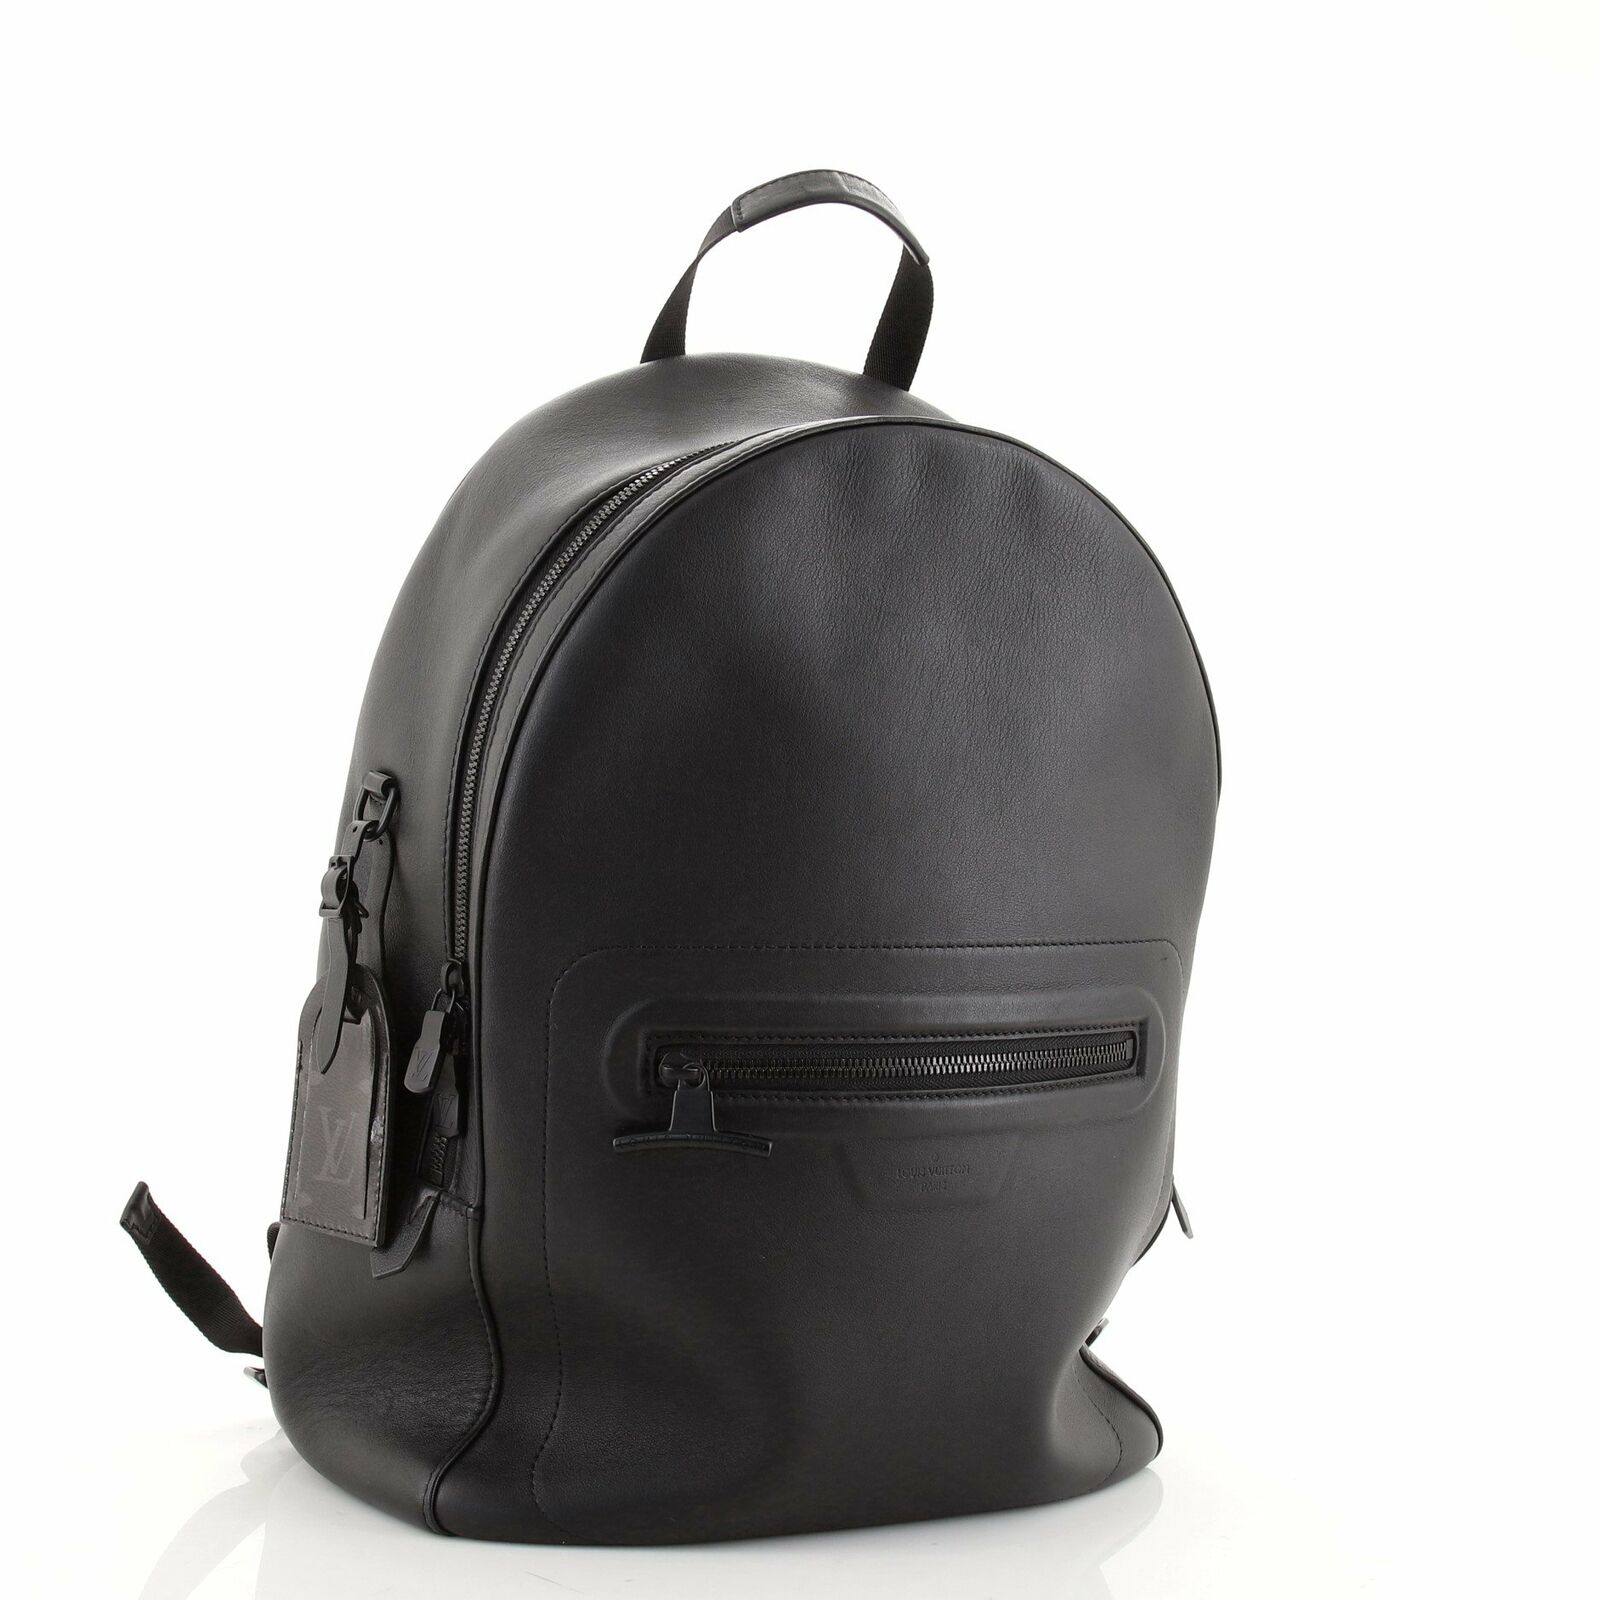 Louis Vuitton Backpack Dark Infinity Leather PM - image 2